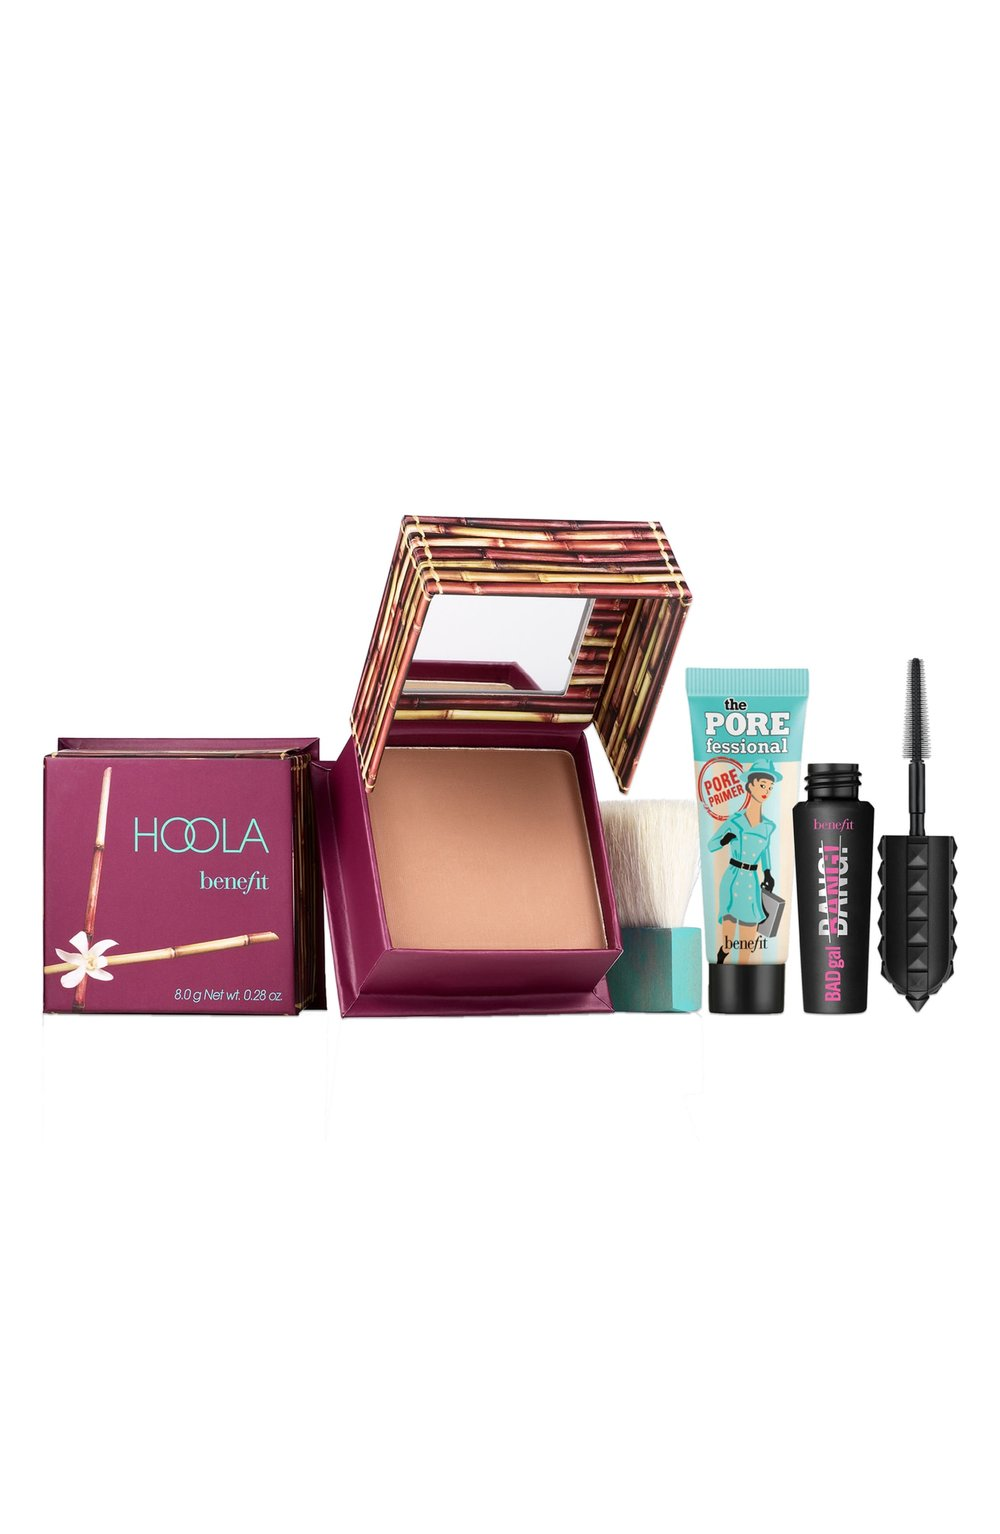 - Another set that you really can't go wrong with. The Hoola Bronzer is amazing and the POREfessional primer is loved by so many. Both the primer and the mascara are mini-sized, but the bronzer is full-sized and normally retails for $29. So, for just a few more bucks, you get two more products!